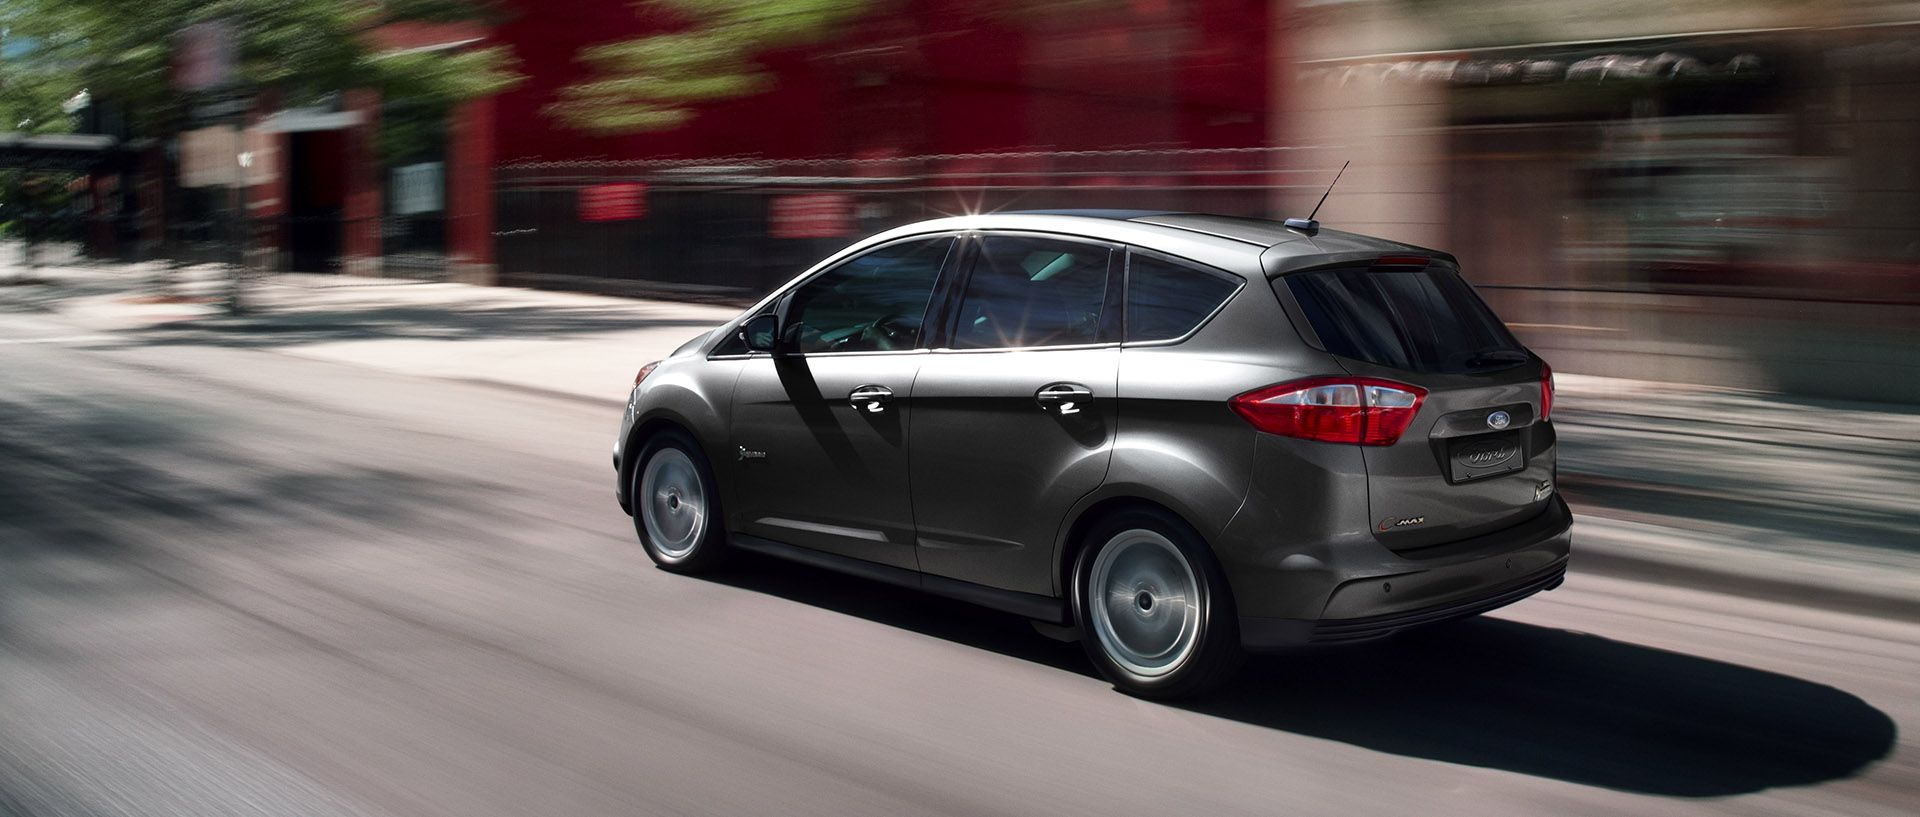 The Most Satisfying Commuter Cars Car ford, Uses of